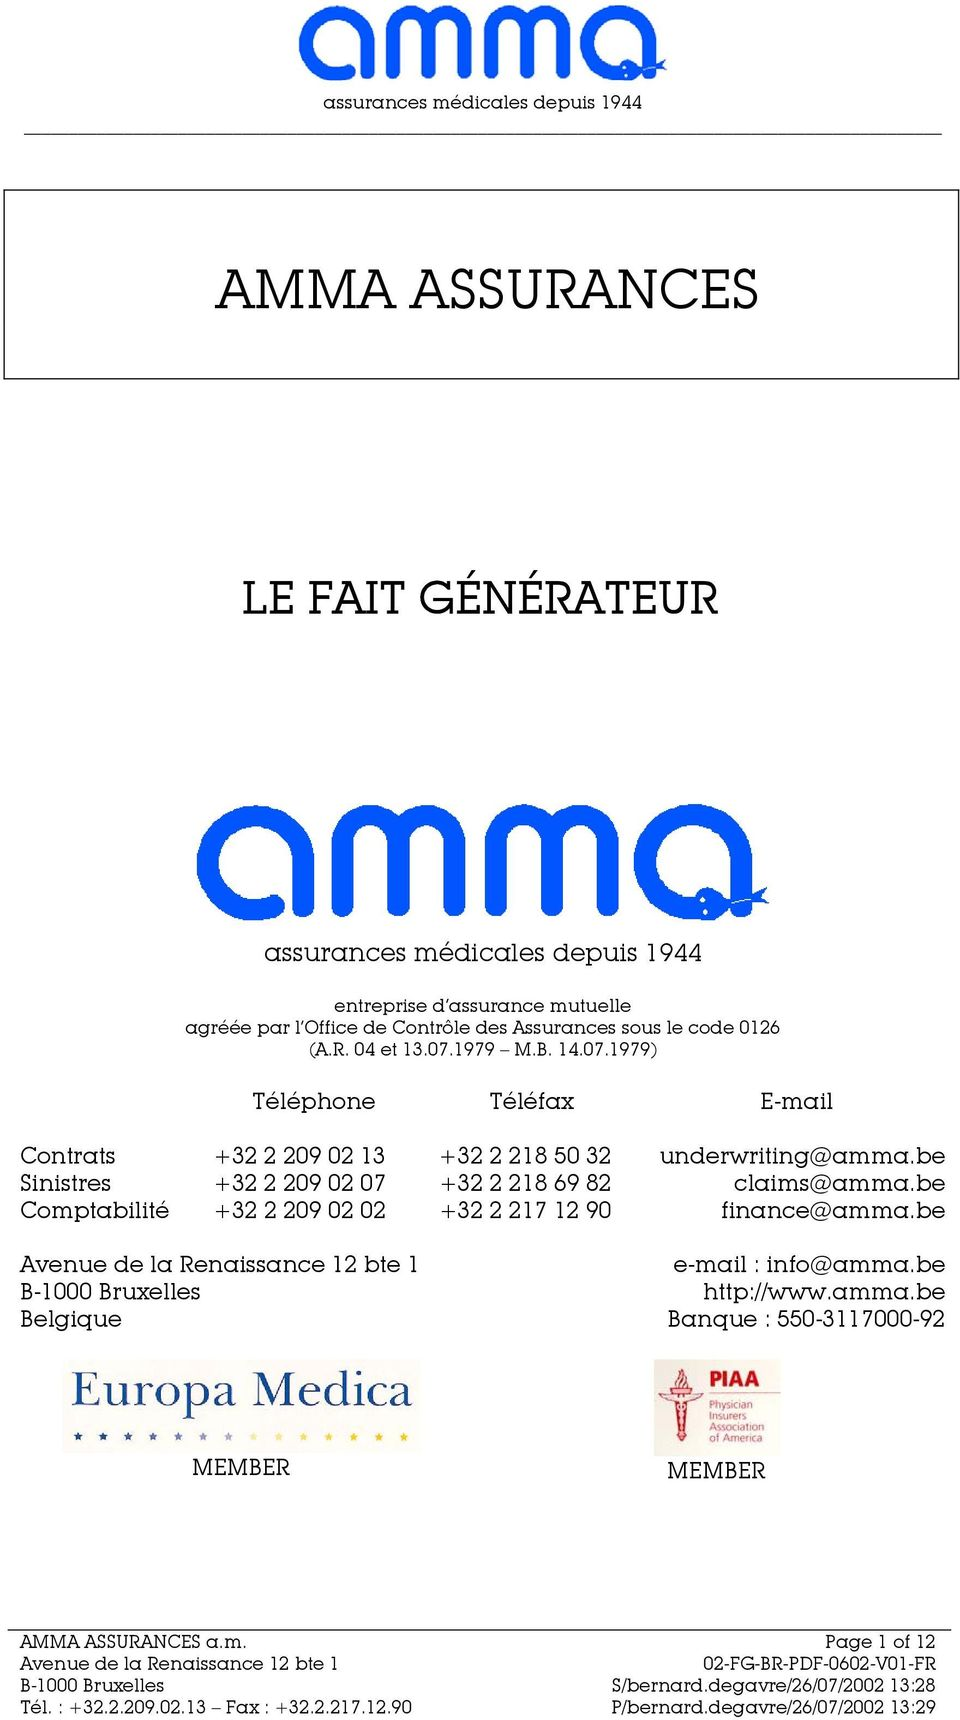 be Sinistres +32 2 209 02 07 +32 2 218 69 82 claims@amma.be Comptabilité +32 2 209 02 02 +32 2 217 12 90 finance@amma.